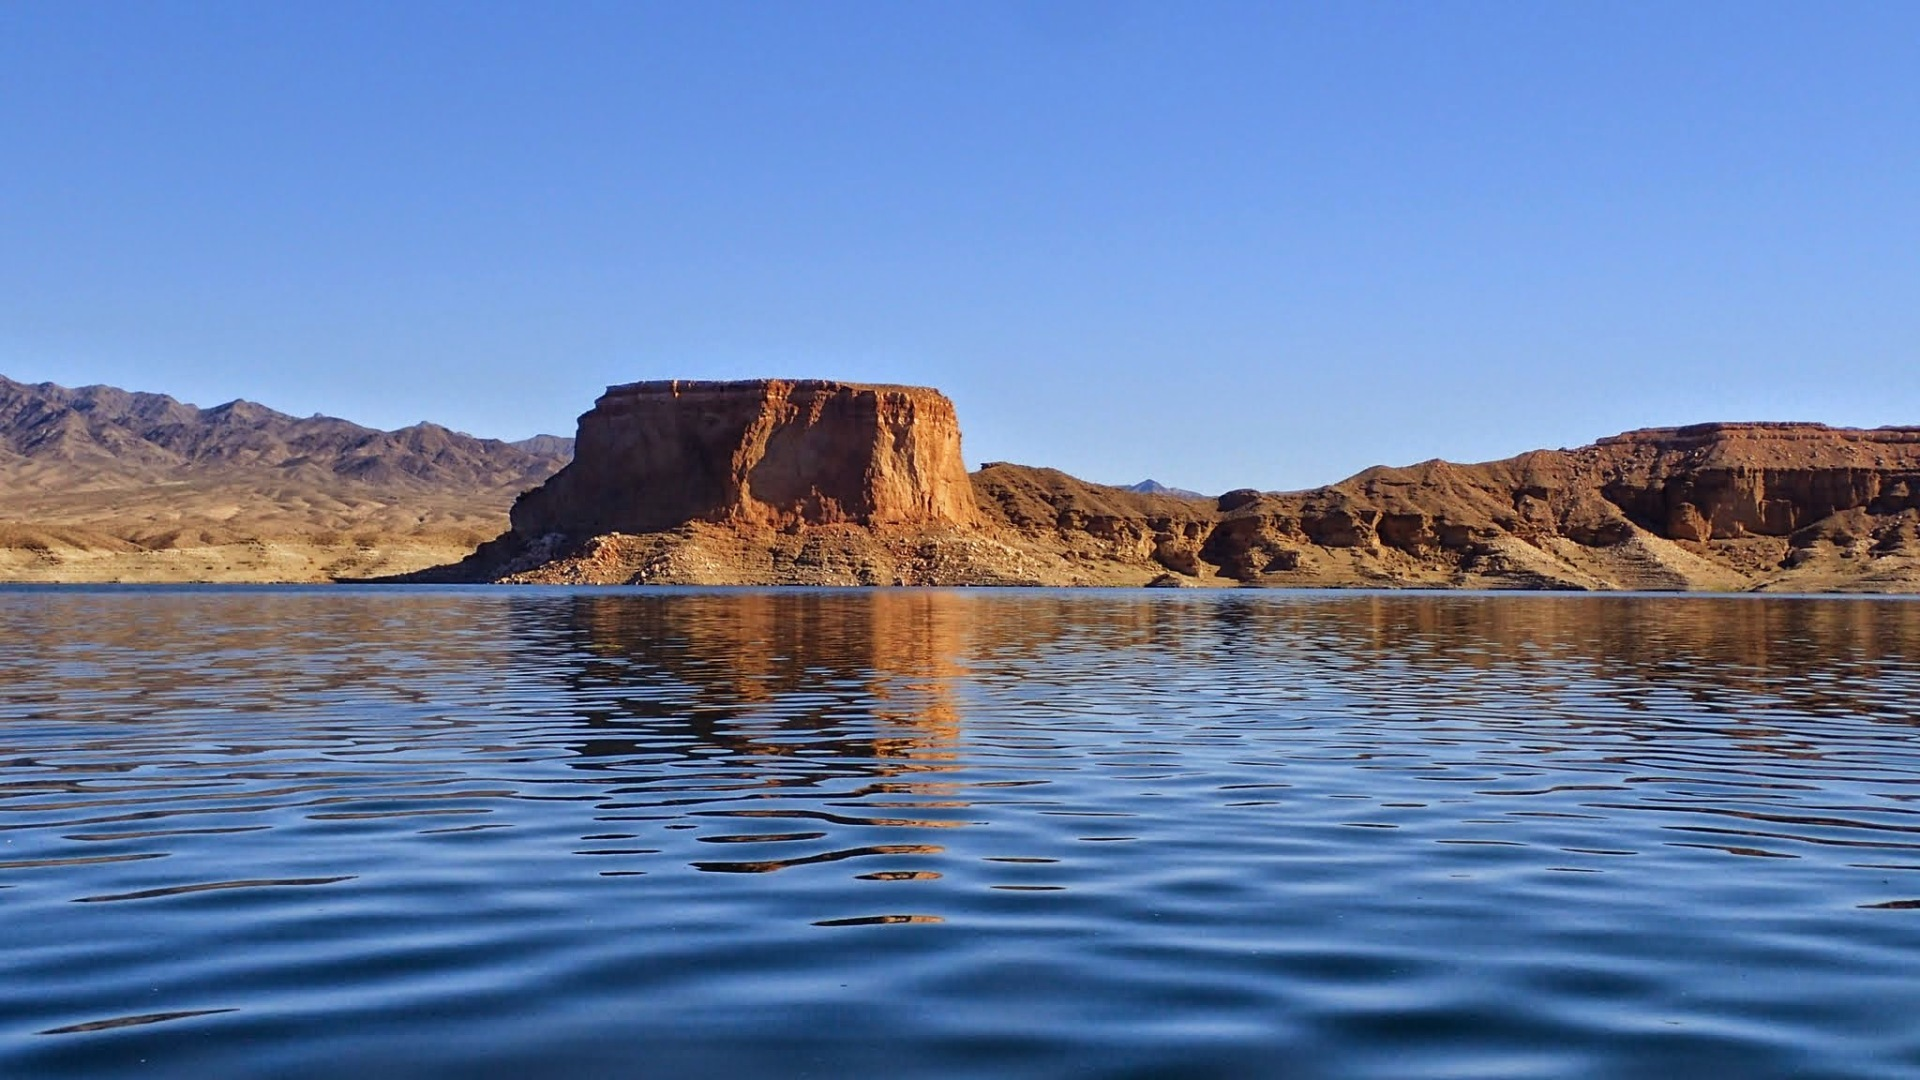 A kayak trip to The Temple with Kayak Lake Mead